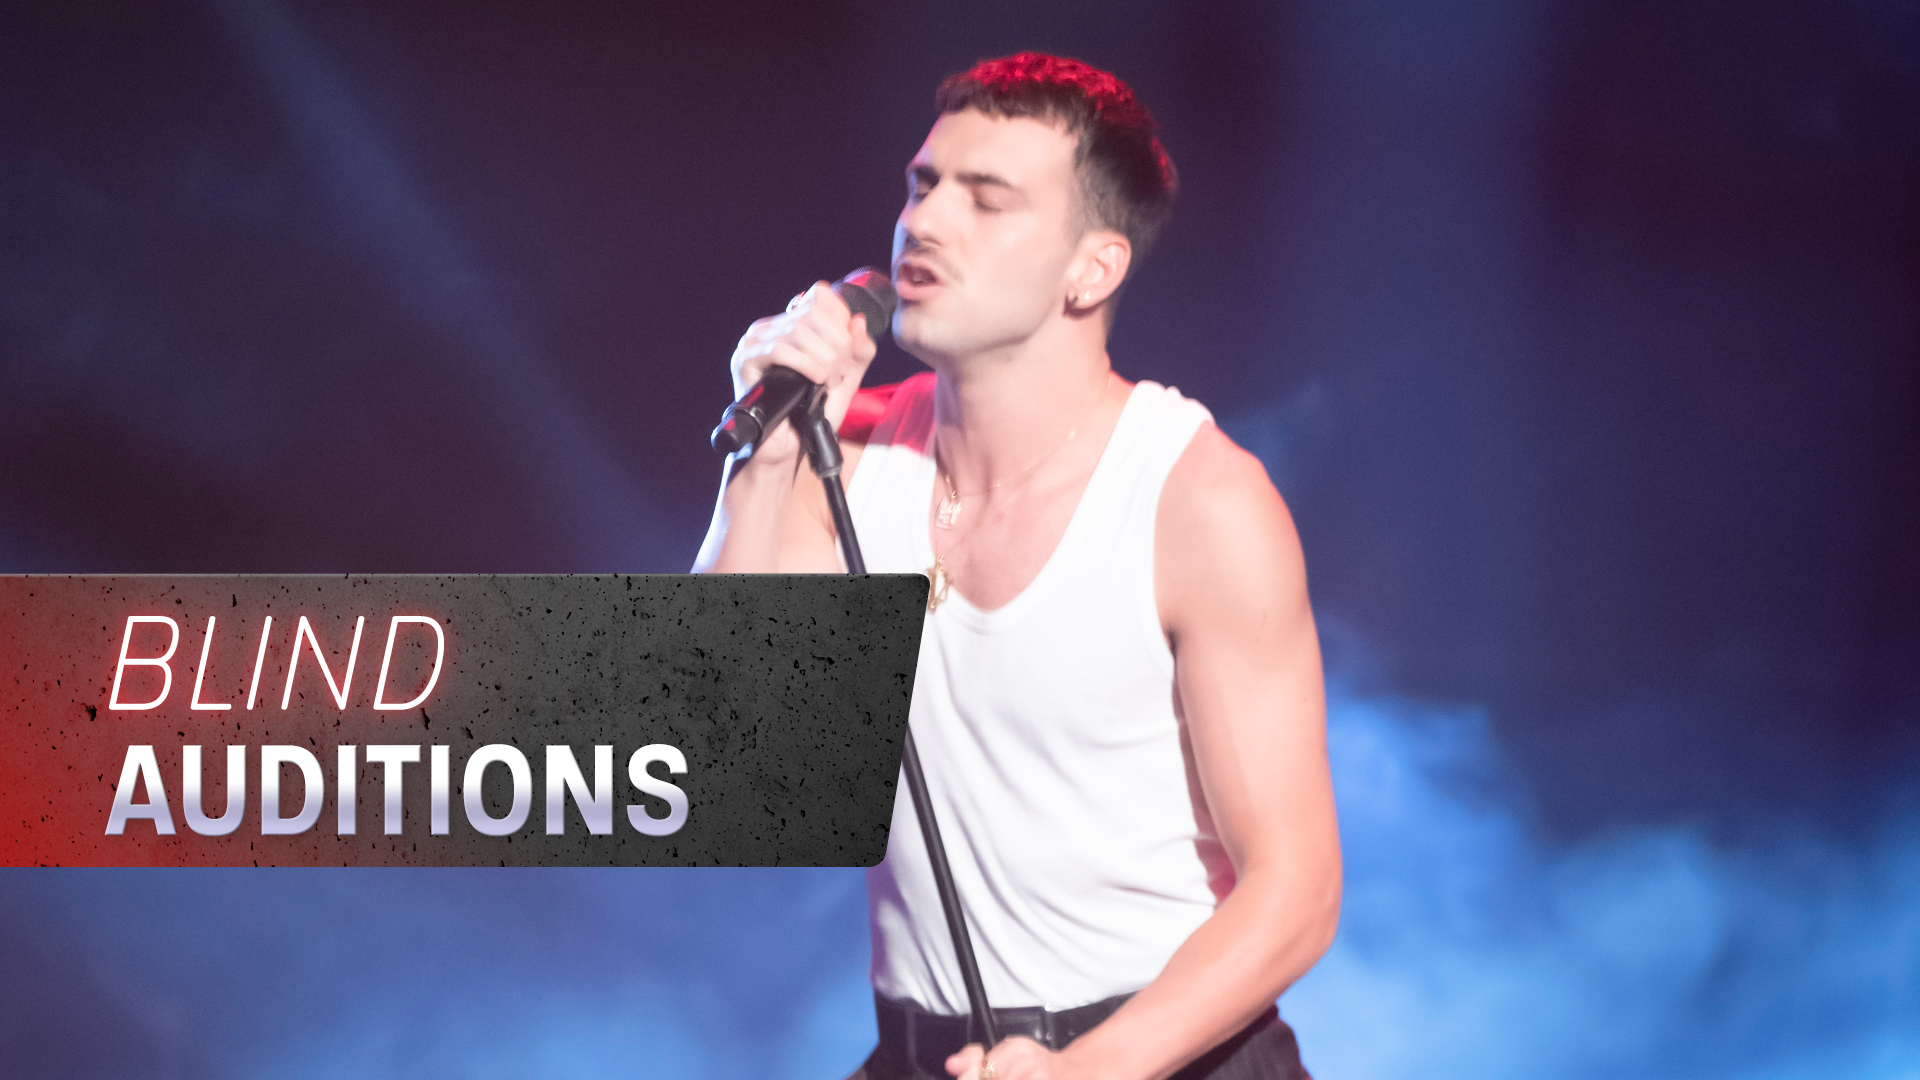 Blind Auditions: Nathan Isaac 'You Spin me Round'